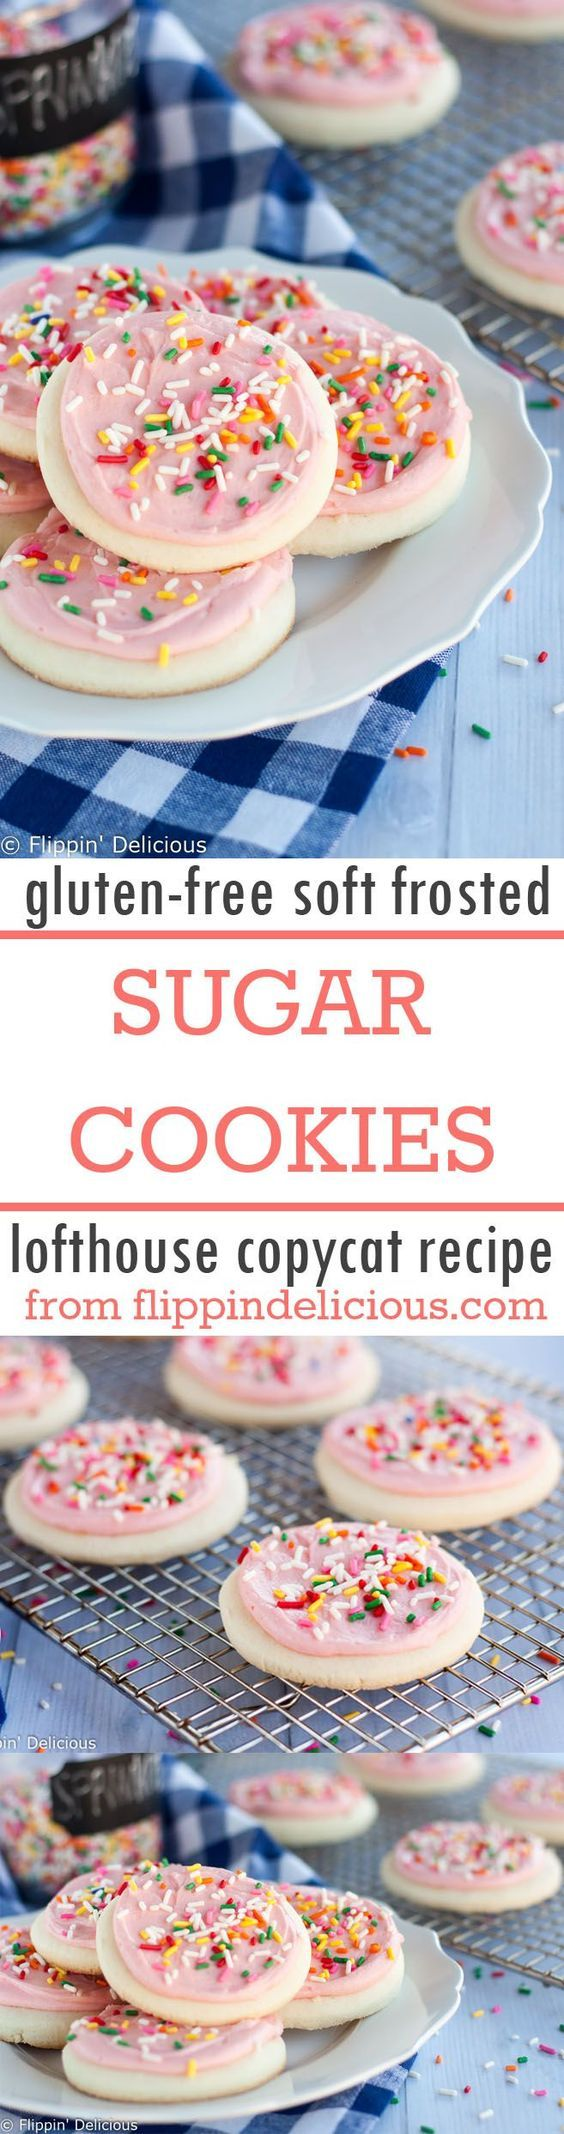 Lofthouse Copycat {Gluten Free!!!} Soft Frosted Sugar Cookies Recipe   Flippin Delicious